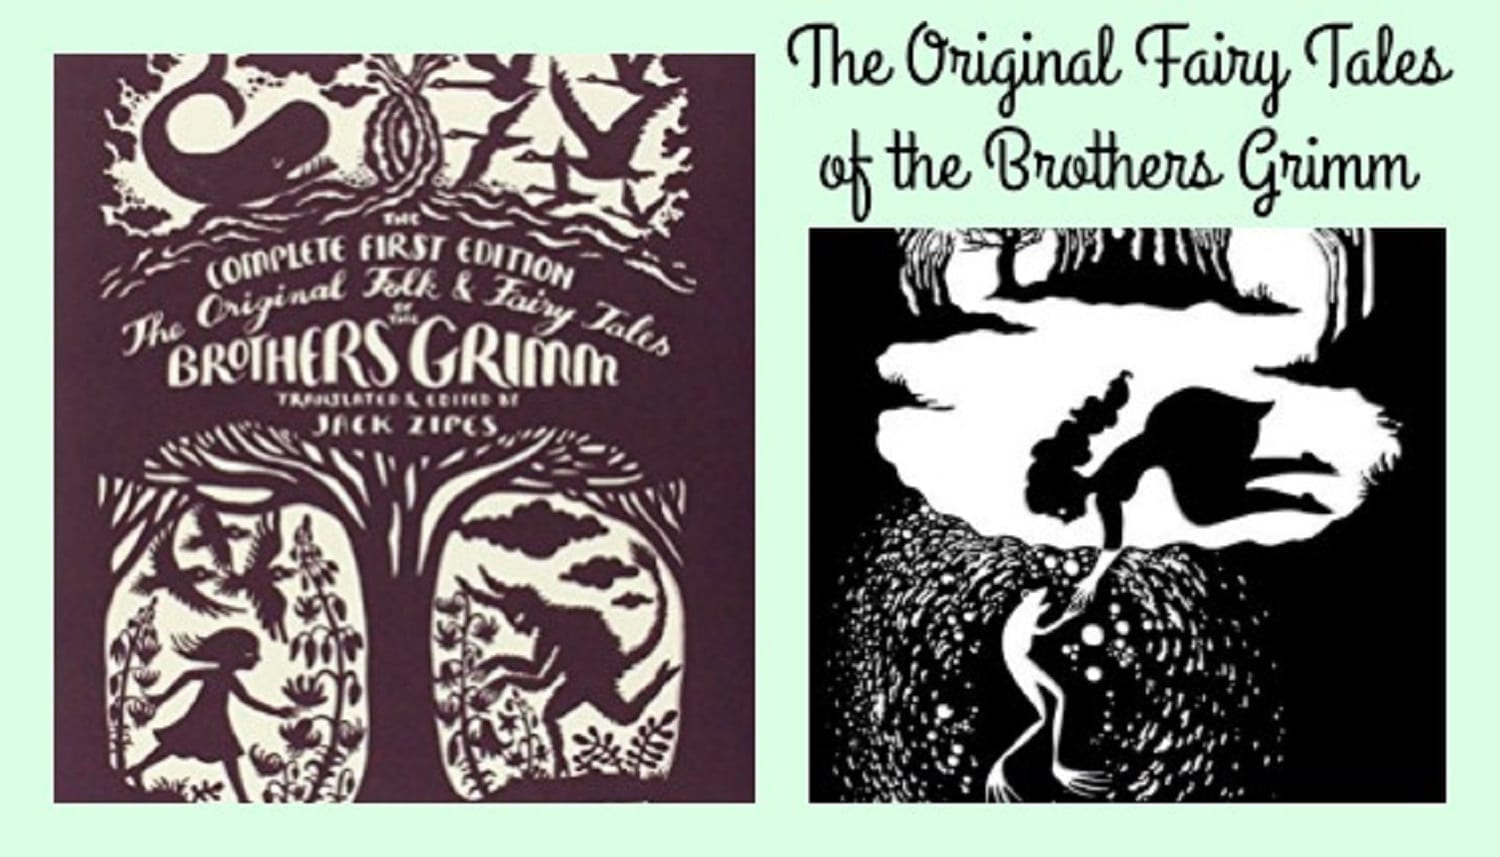 The Original Fairy Tales of the Brothers Grimm: The Complete First Edition- It's not all Sweetness and Light